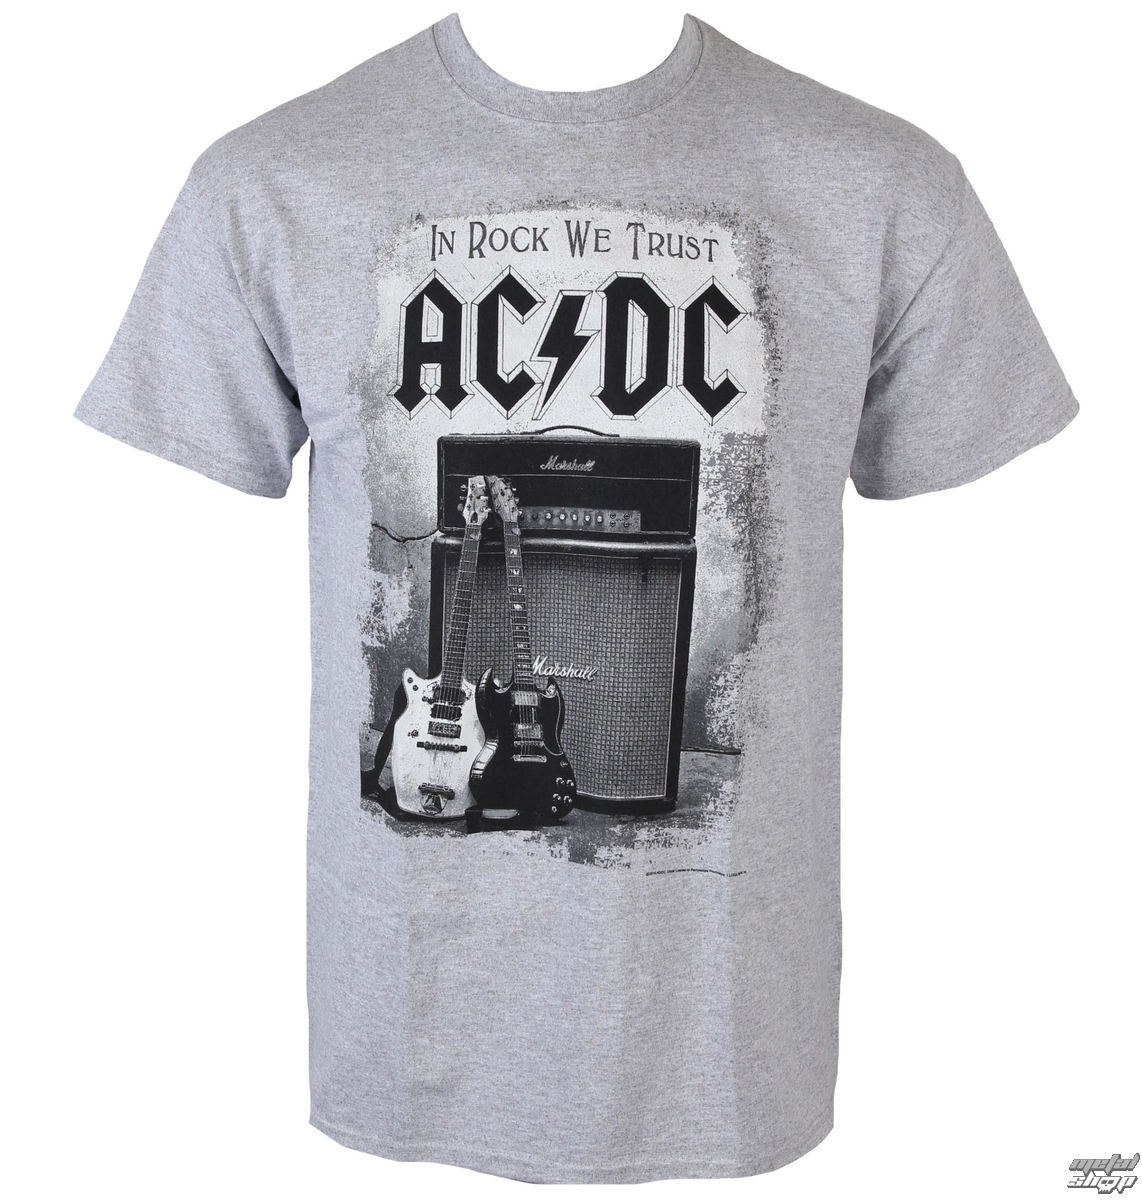 t shirt homme ac dc ac dc t shirt homme 100 coton manches. Black Bedroom Furniture Sets. Home Design Ideas